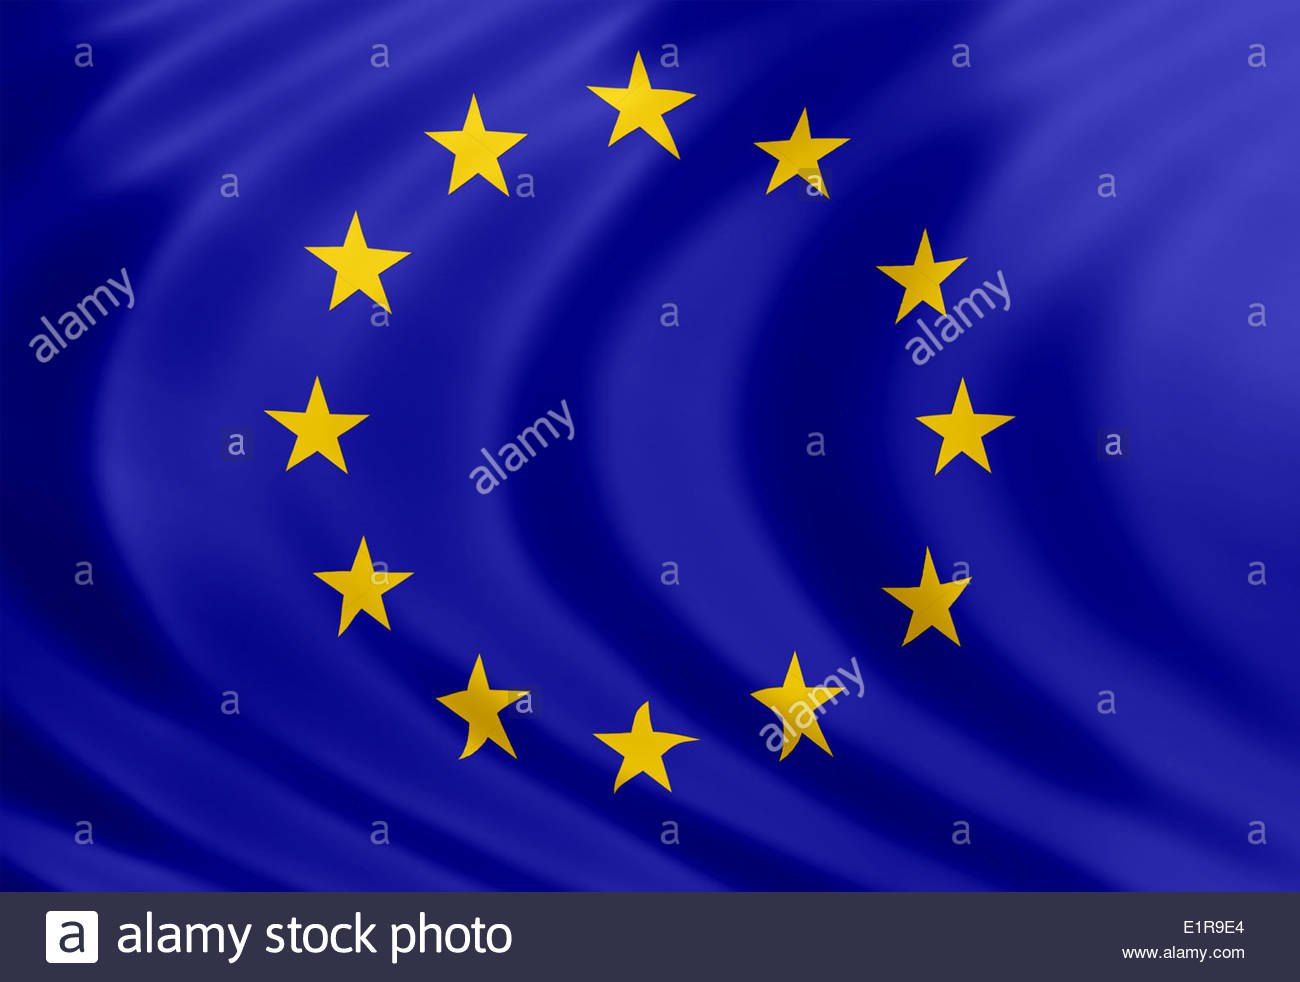 European Union flag icon of silk - Stock Image